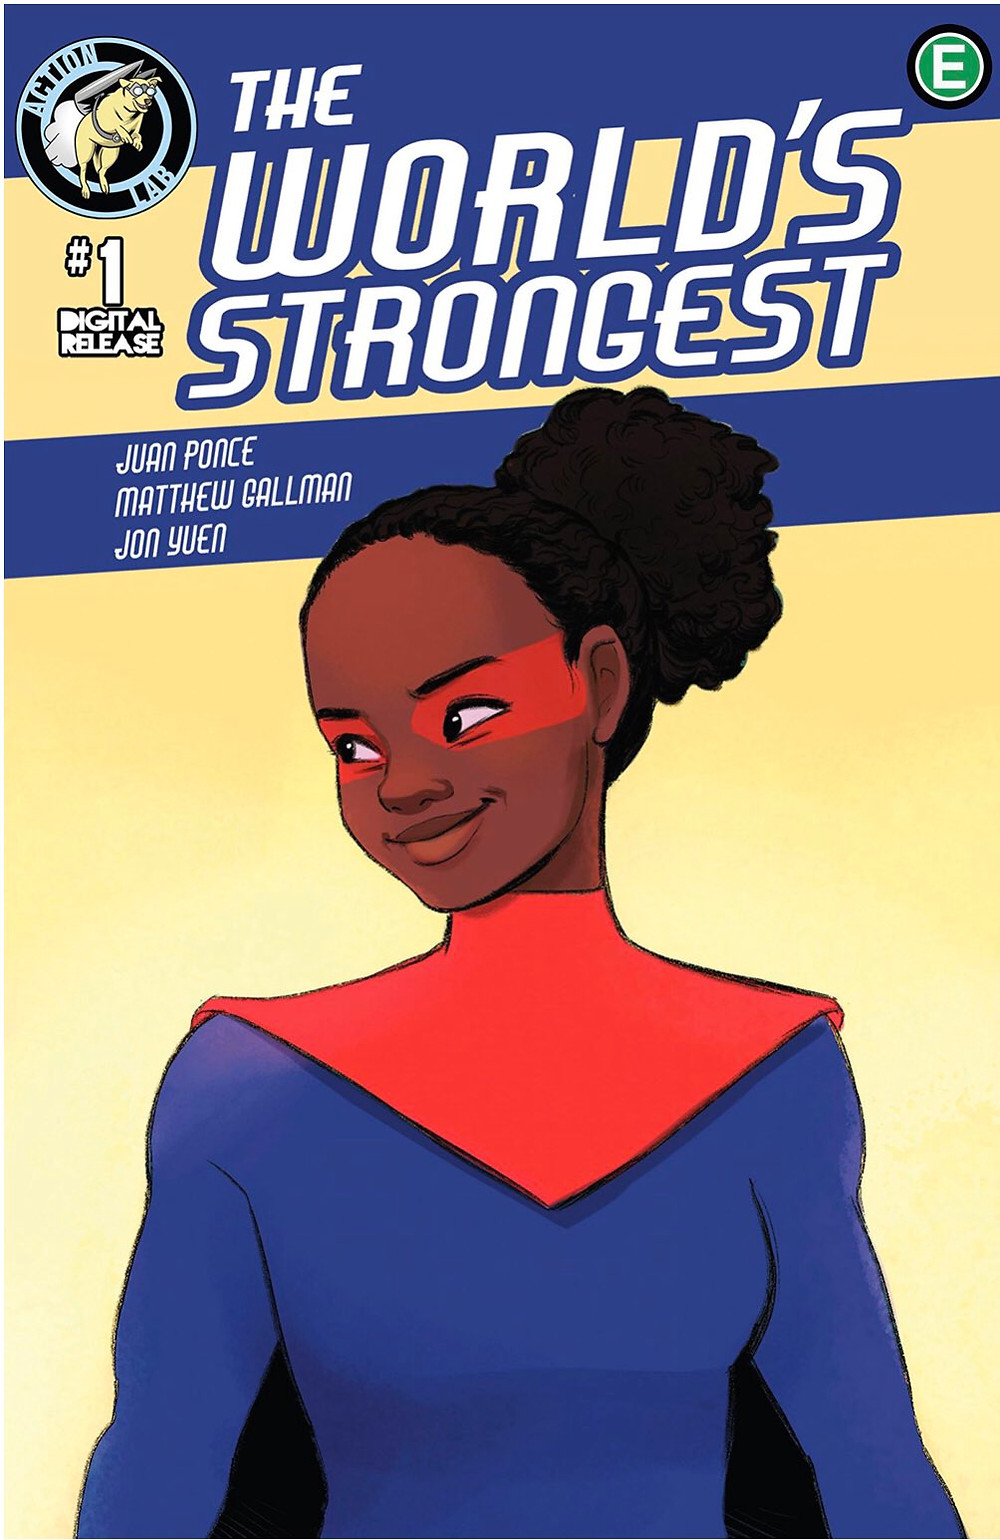 World's Strongest #1, Action Lab Ent. Cover by Beverly Johnson, Ponce/Gallman